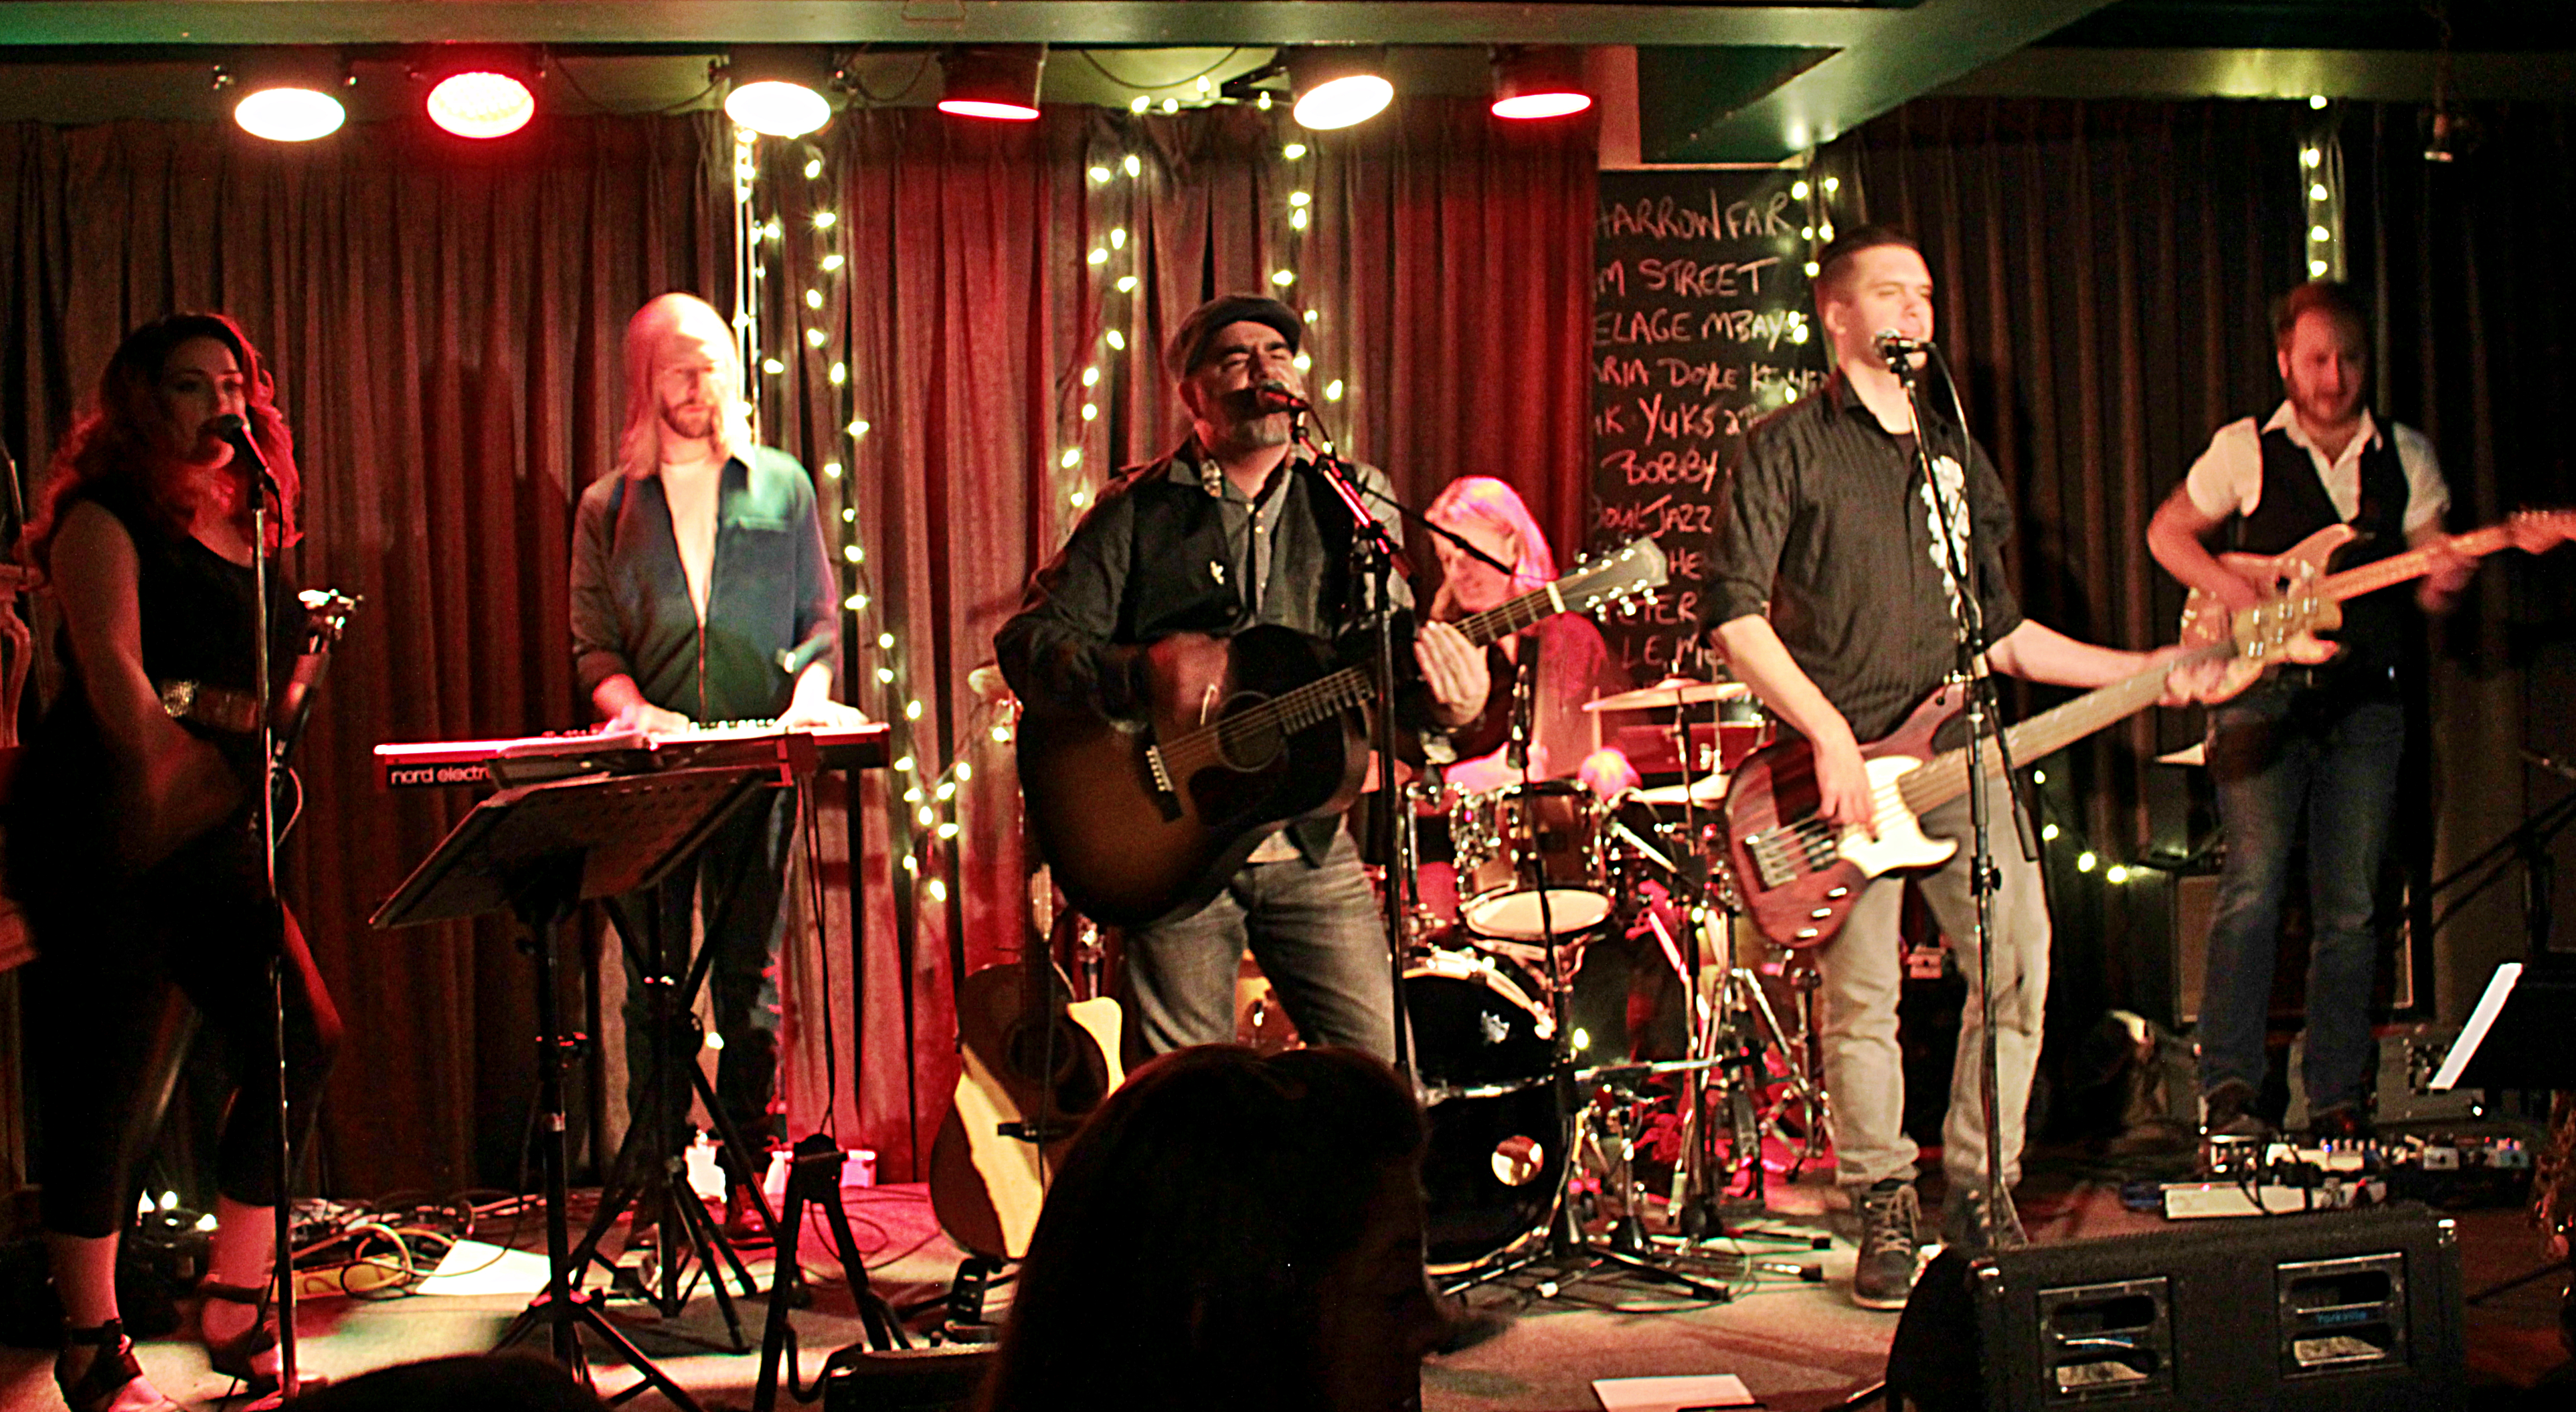 The Powergoats at the Black Sheep Inn - photo by Terry Steeves